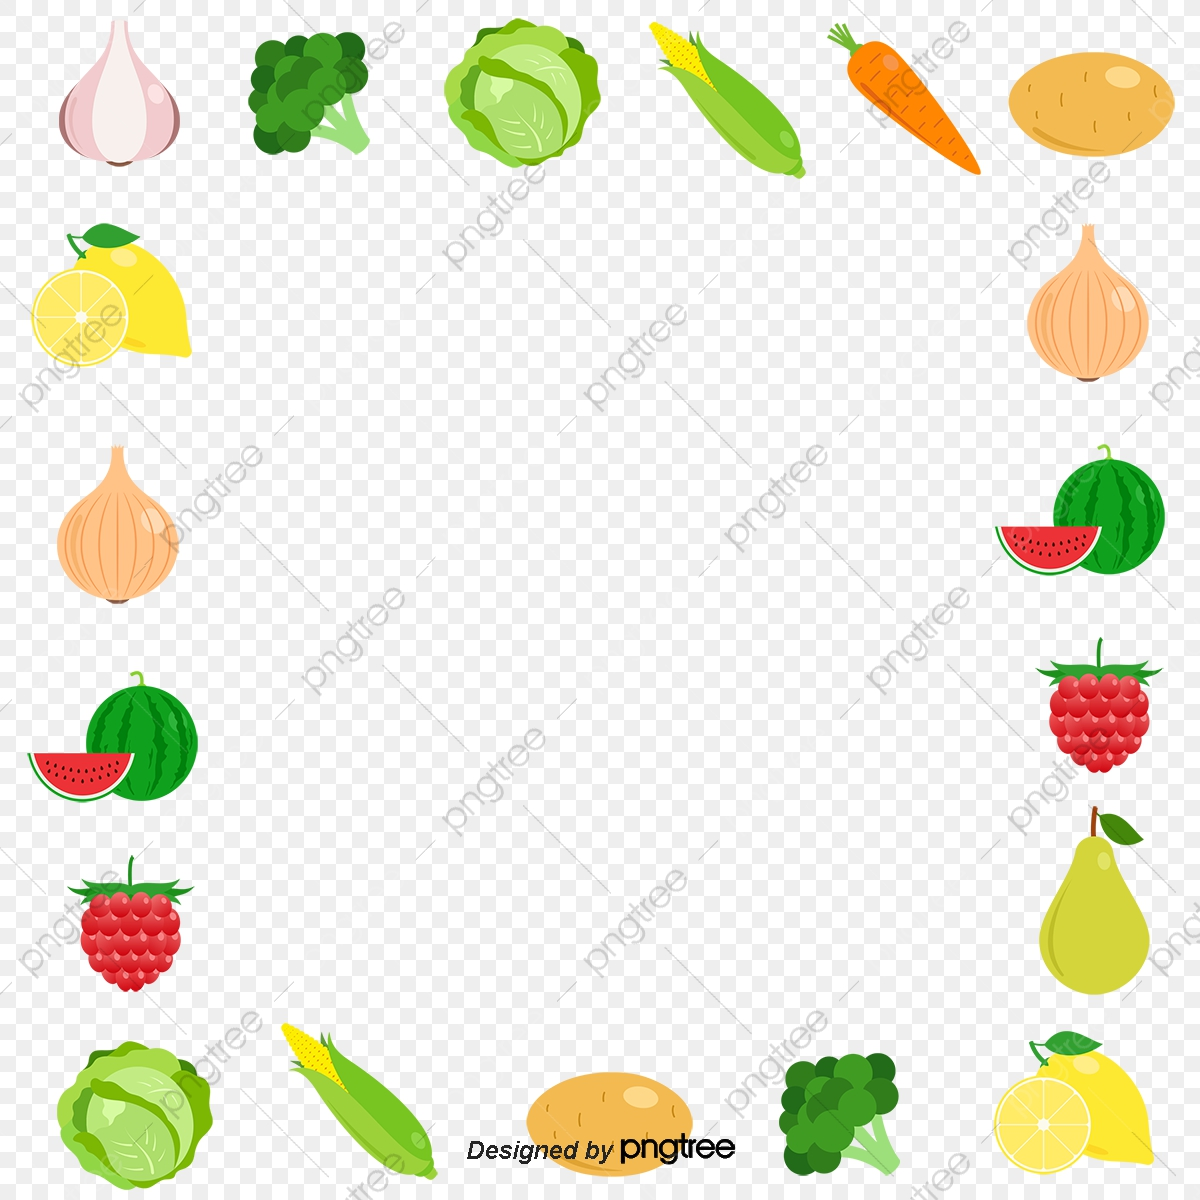 Fruit vector. All kinds of border